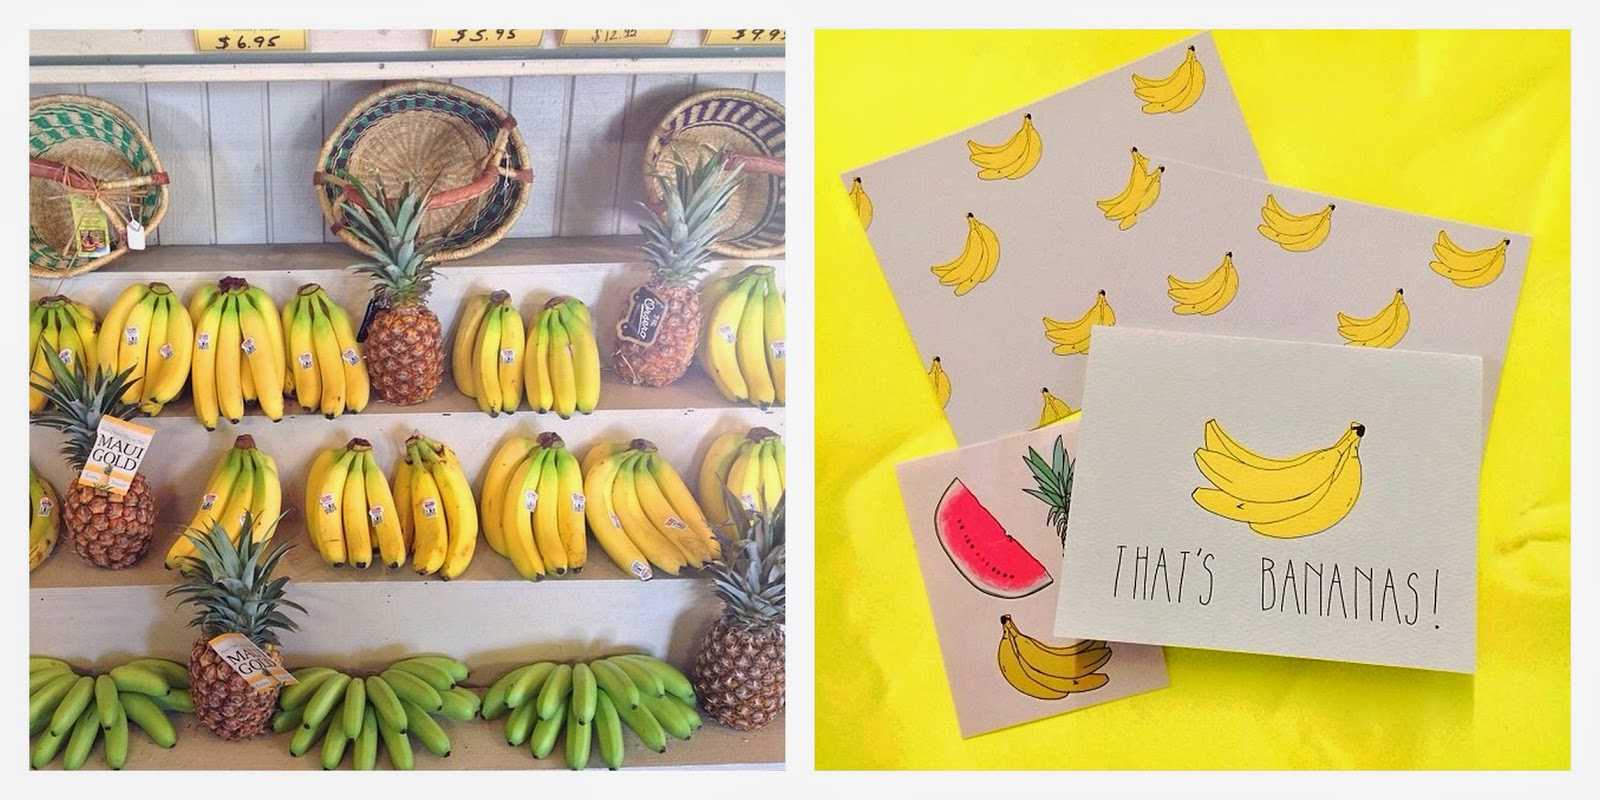 bananes,bananas,jaune,yellow,instagram